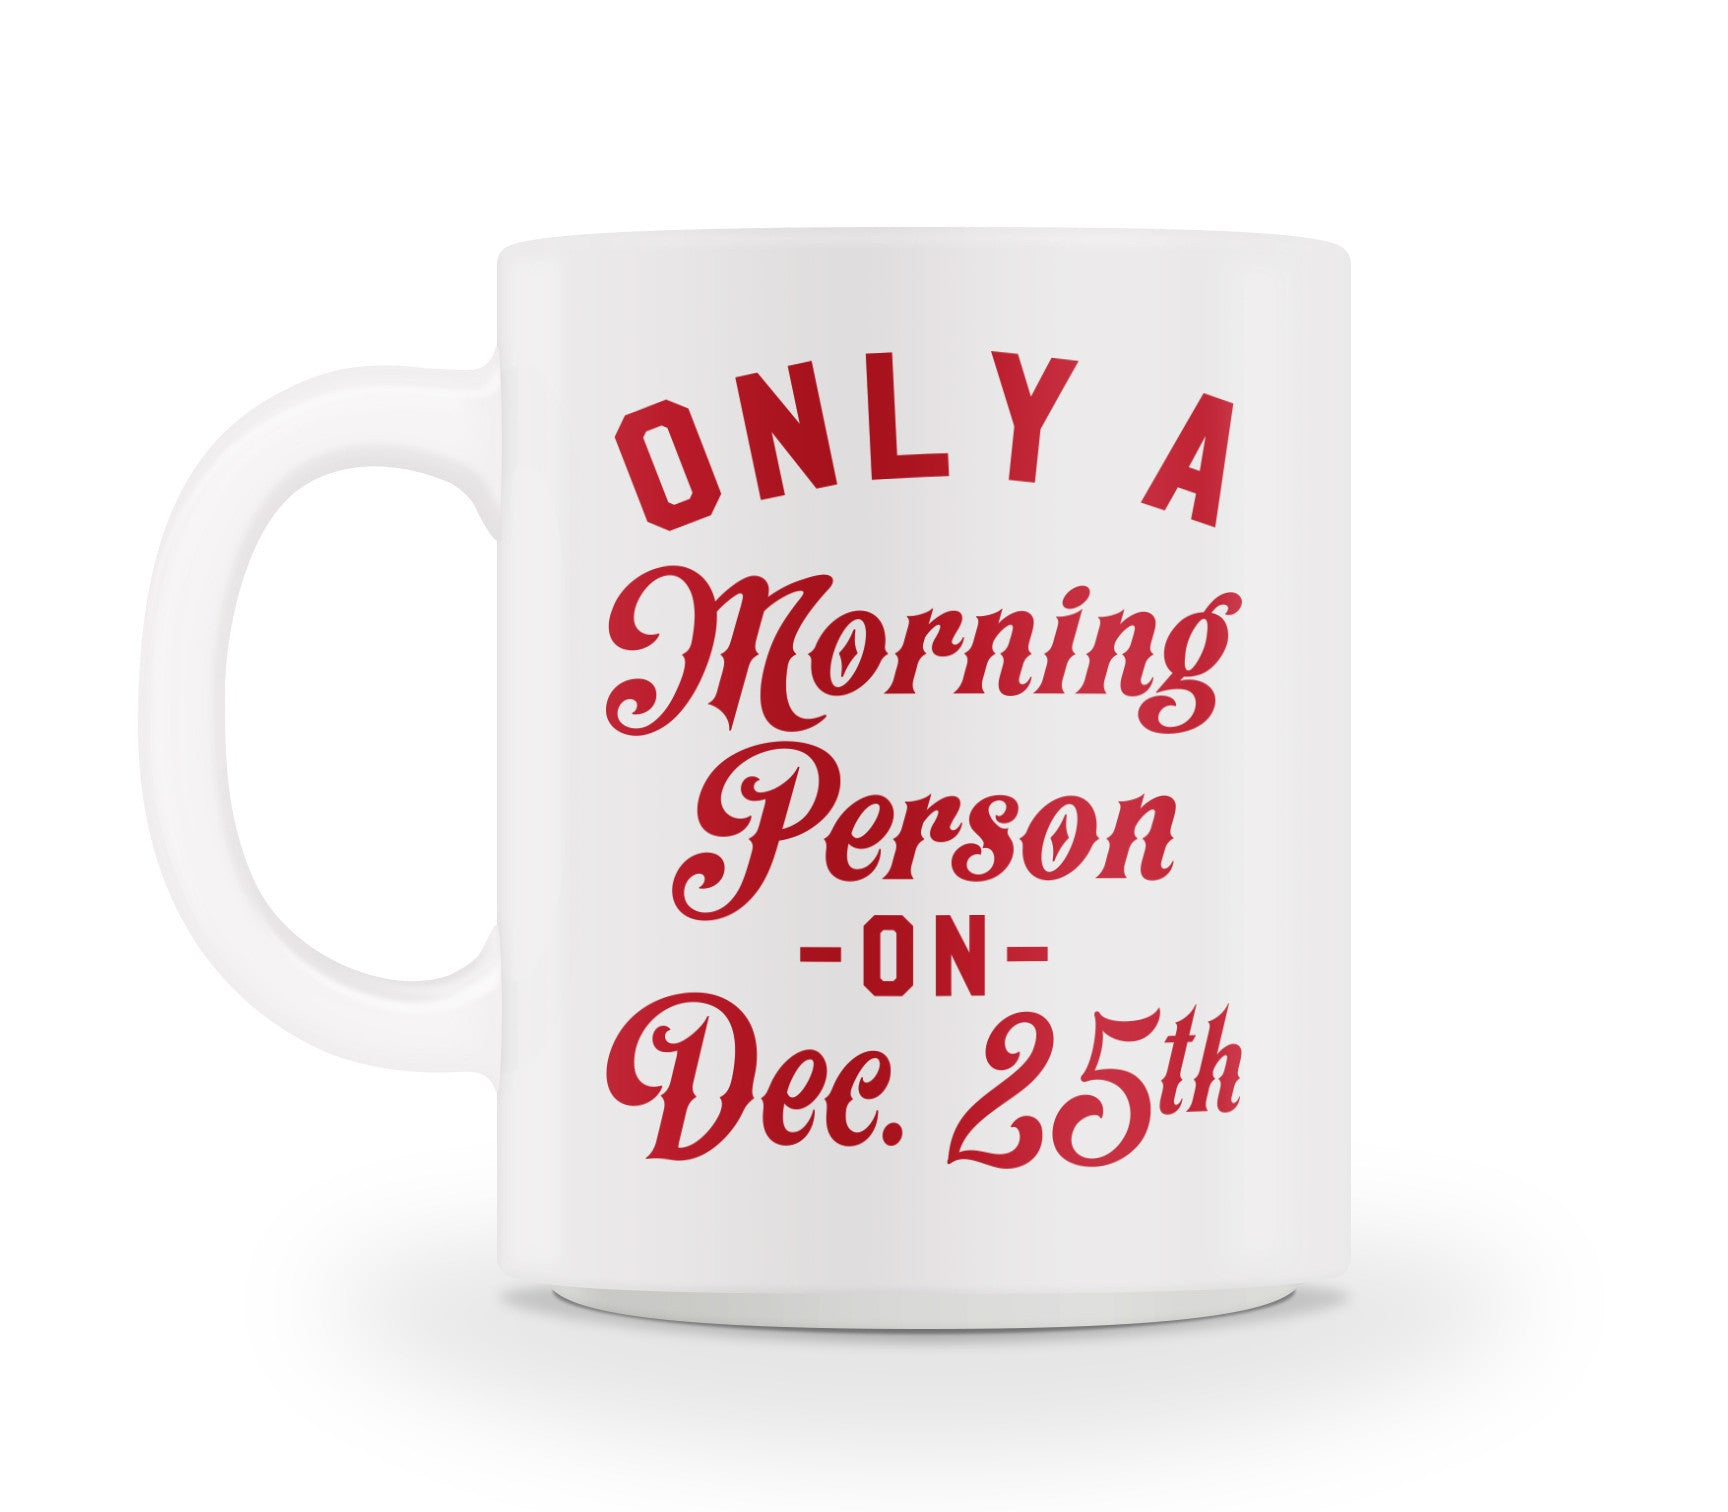 Only a morning person on December 25th!